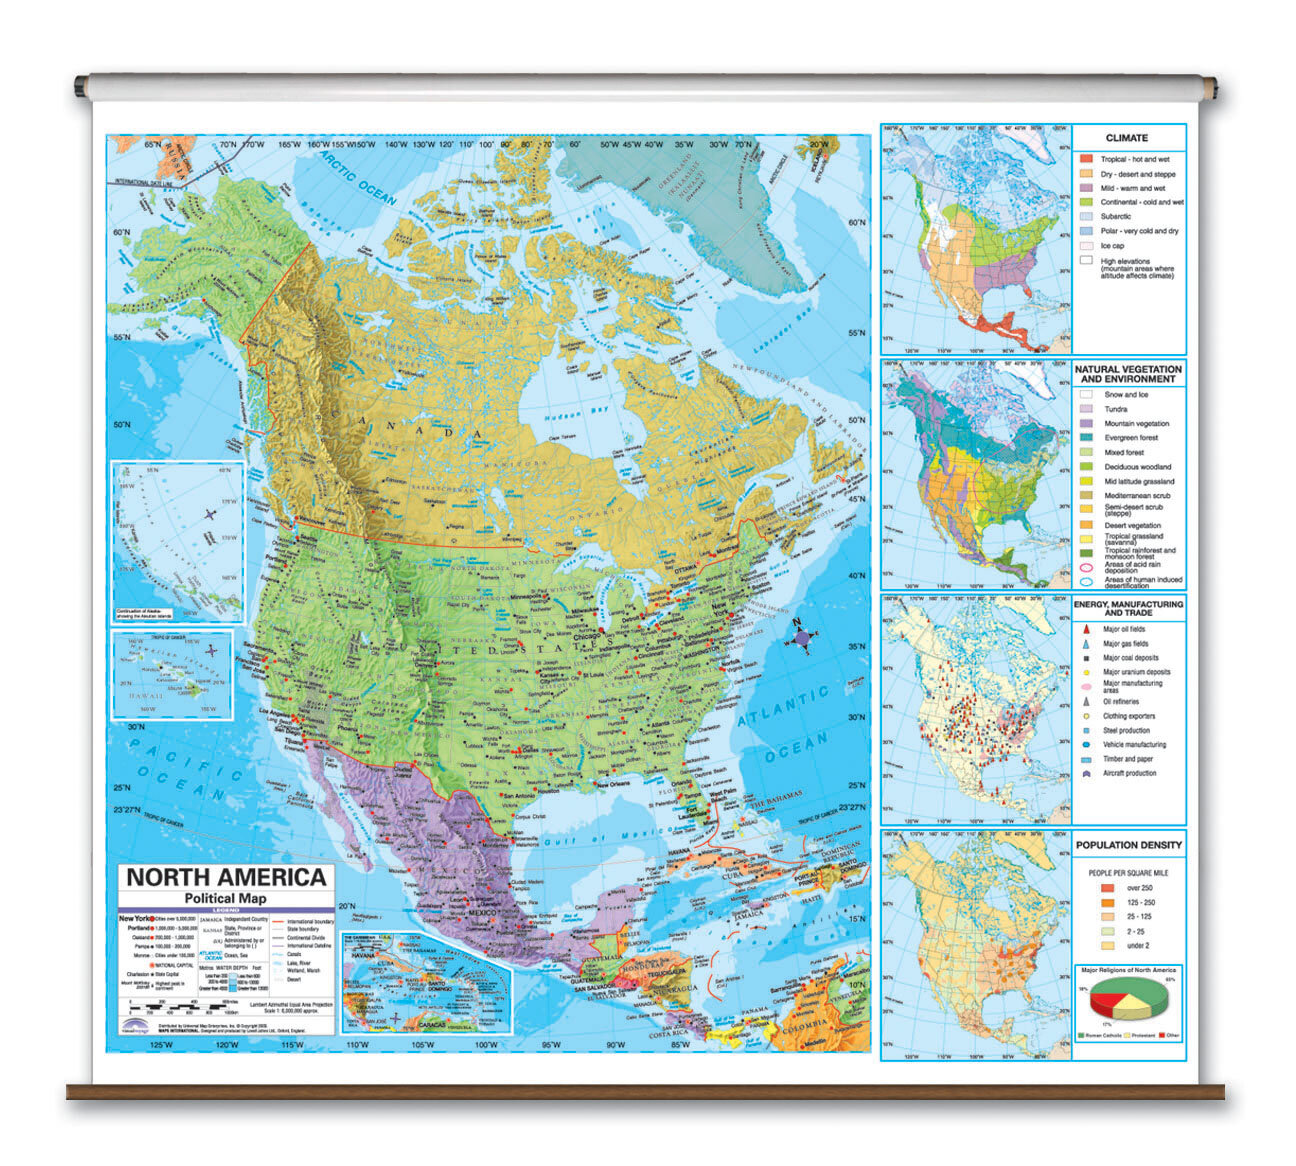 Universal Map Advanced Political Map - North America | Wayfair on letter n america, map latin america, map of america, map o america, globe n america, map n orleans, map central america, time zone america,